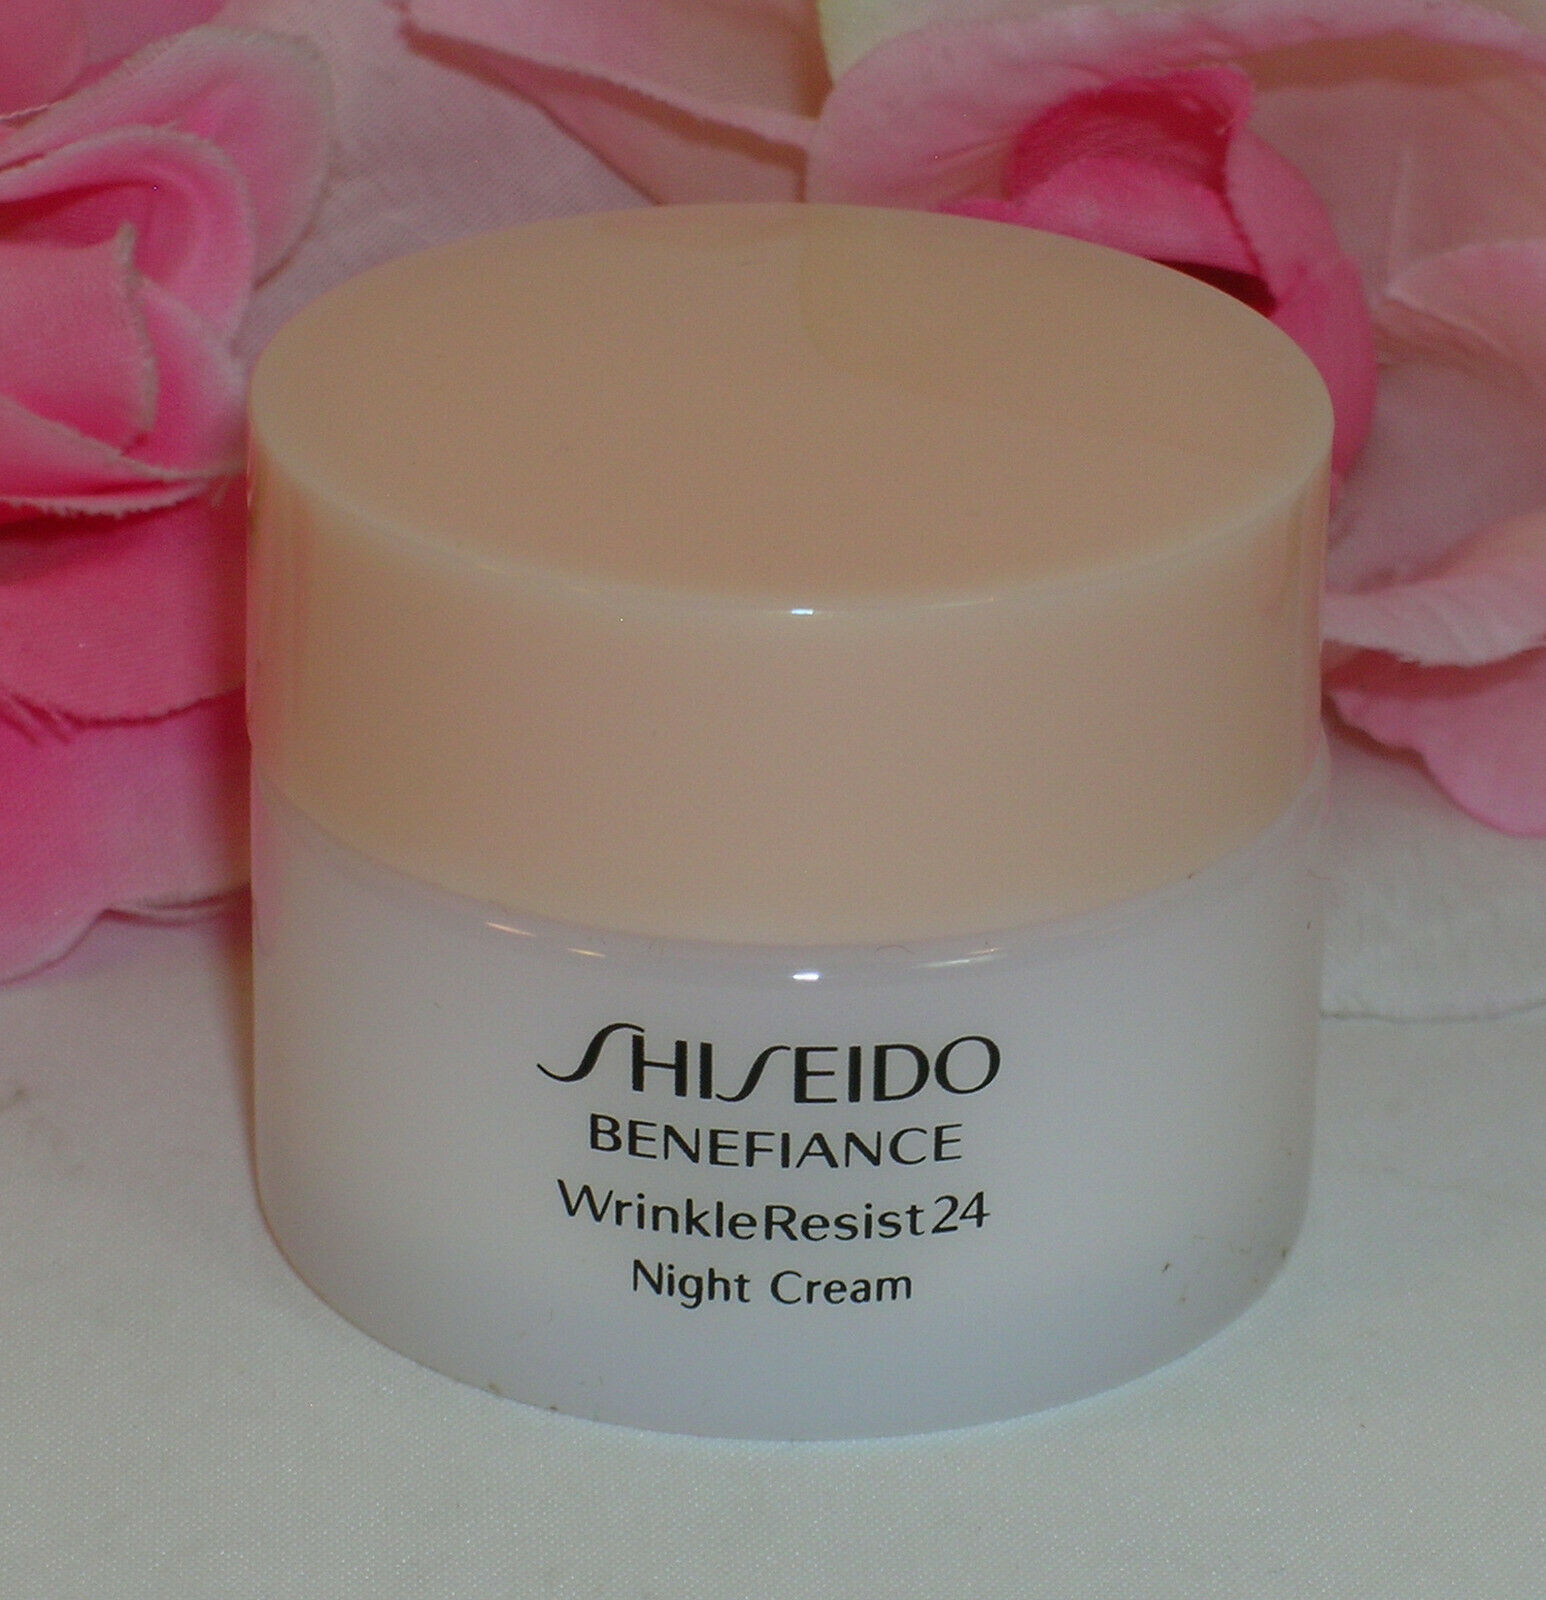 Primary image for New Shiseido Benefiance Wrinkle Resist 24 Night Cream  1 oz / 30 ml